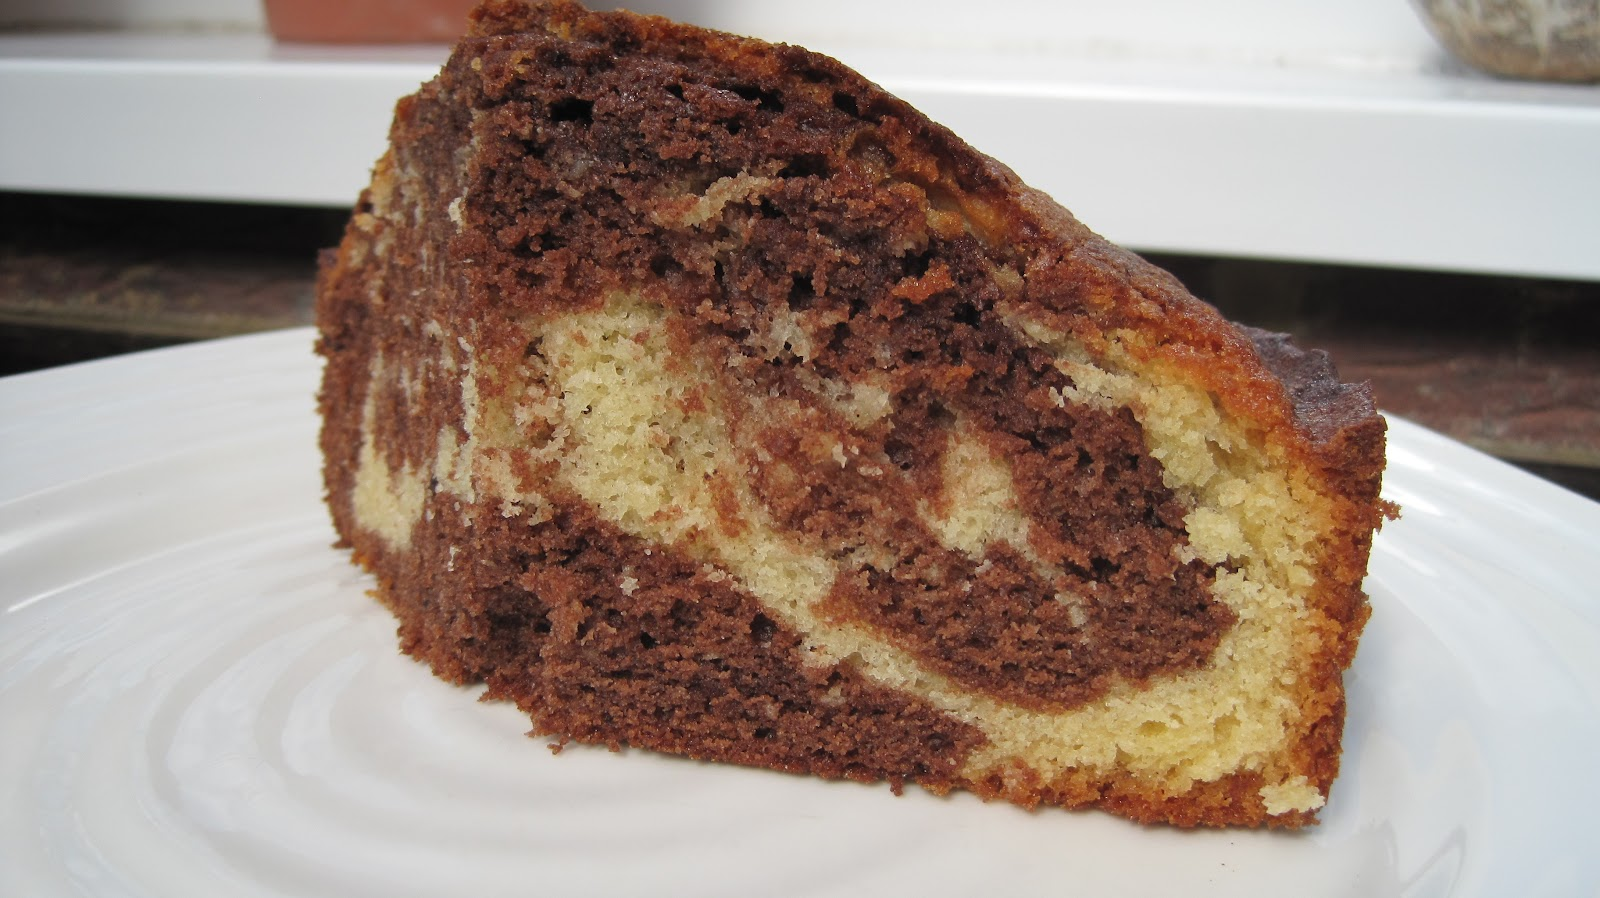 Diary of a keen baker: Chocolate Marble Cake